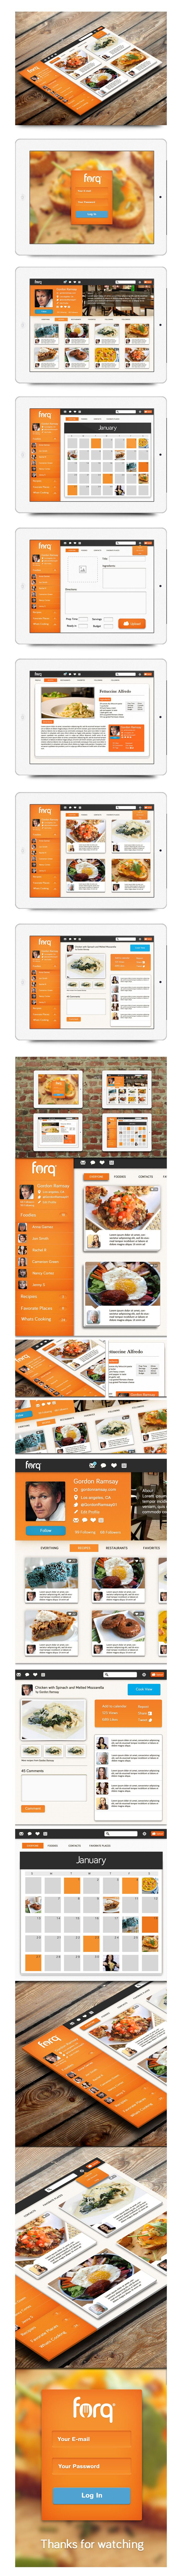 Food Network App / Isaac Sanchez